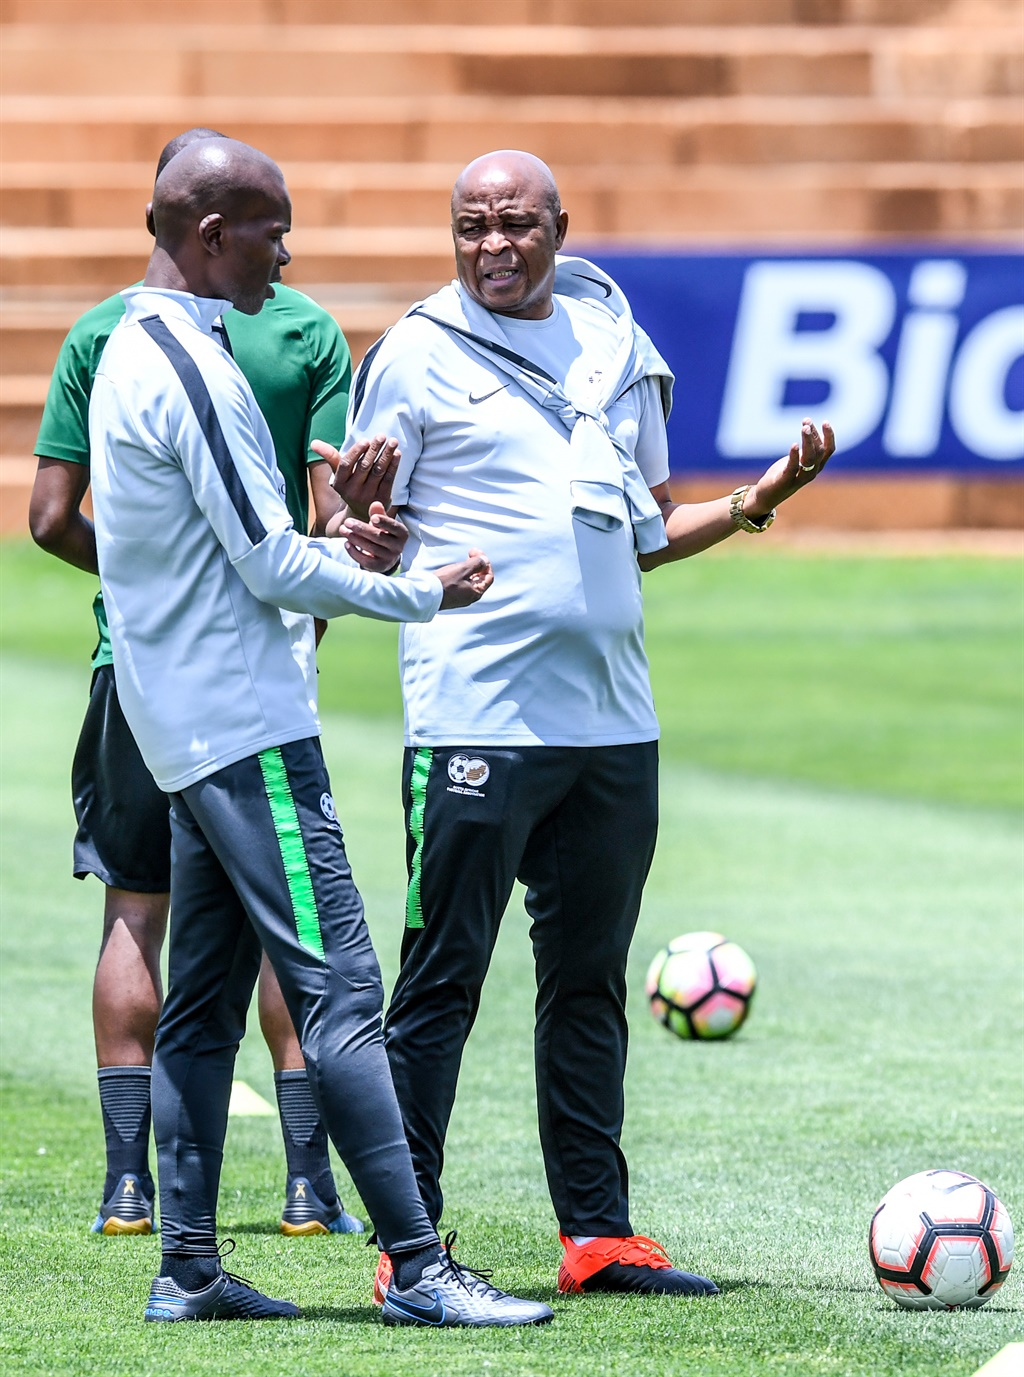 Bafana Bafana coach Molefi Ntseki discusses matters with his coaching staff ahead of their opening Afcon qualifier match against Ghana. Picture: Sydney Seshibedi/Gallo Images